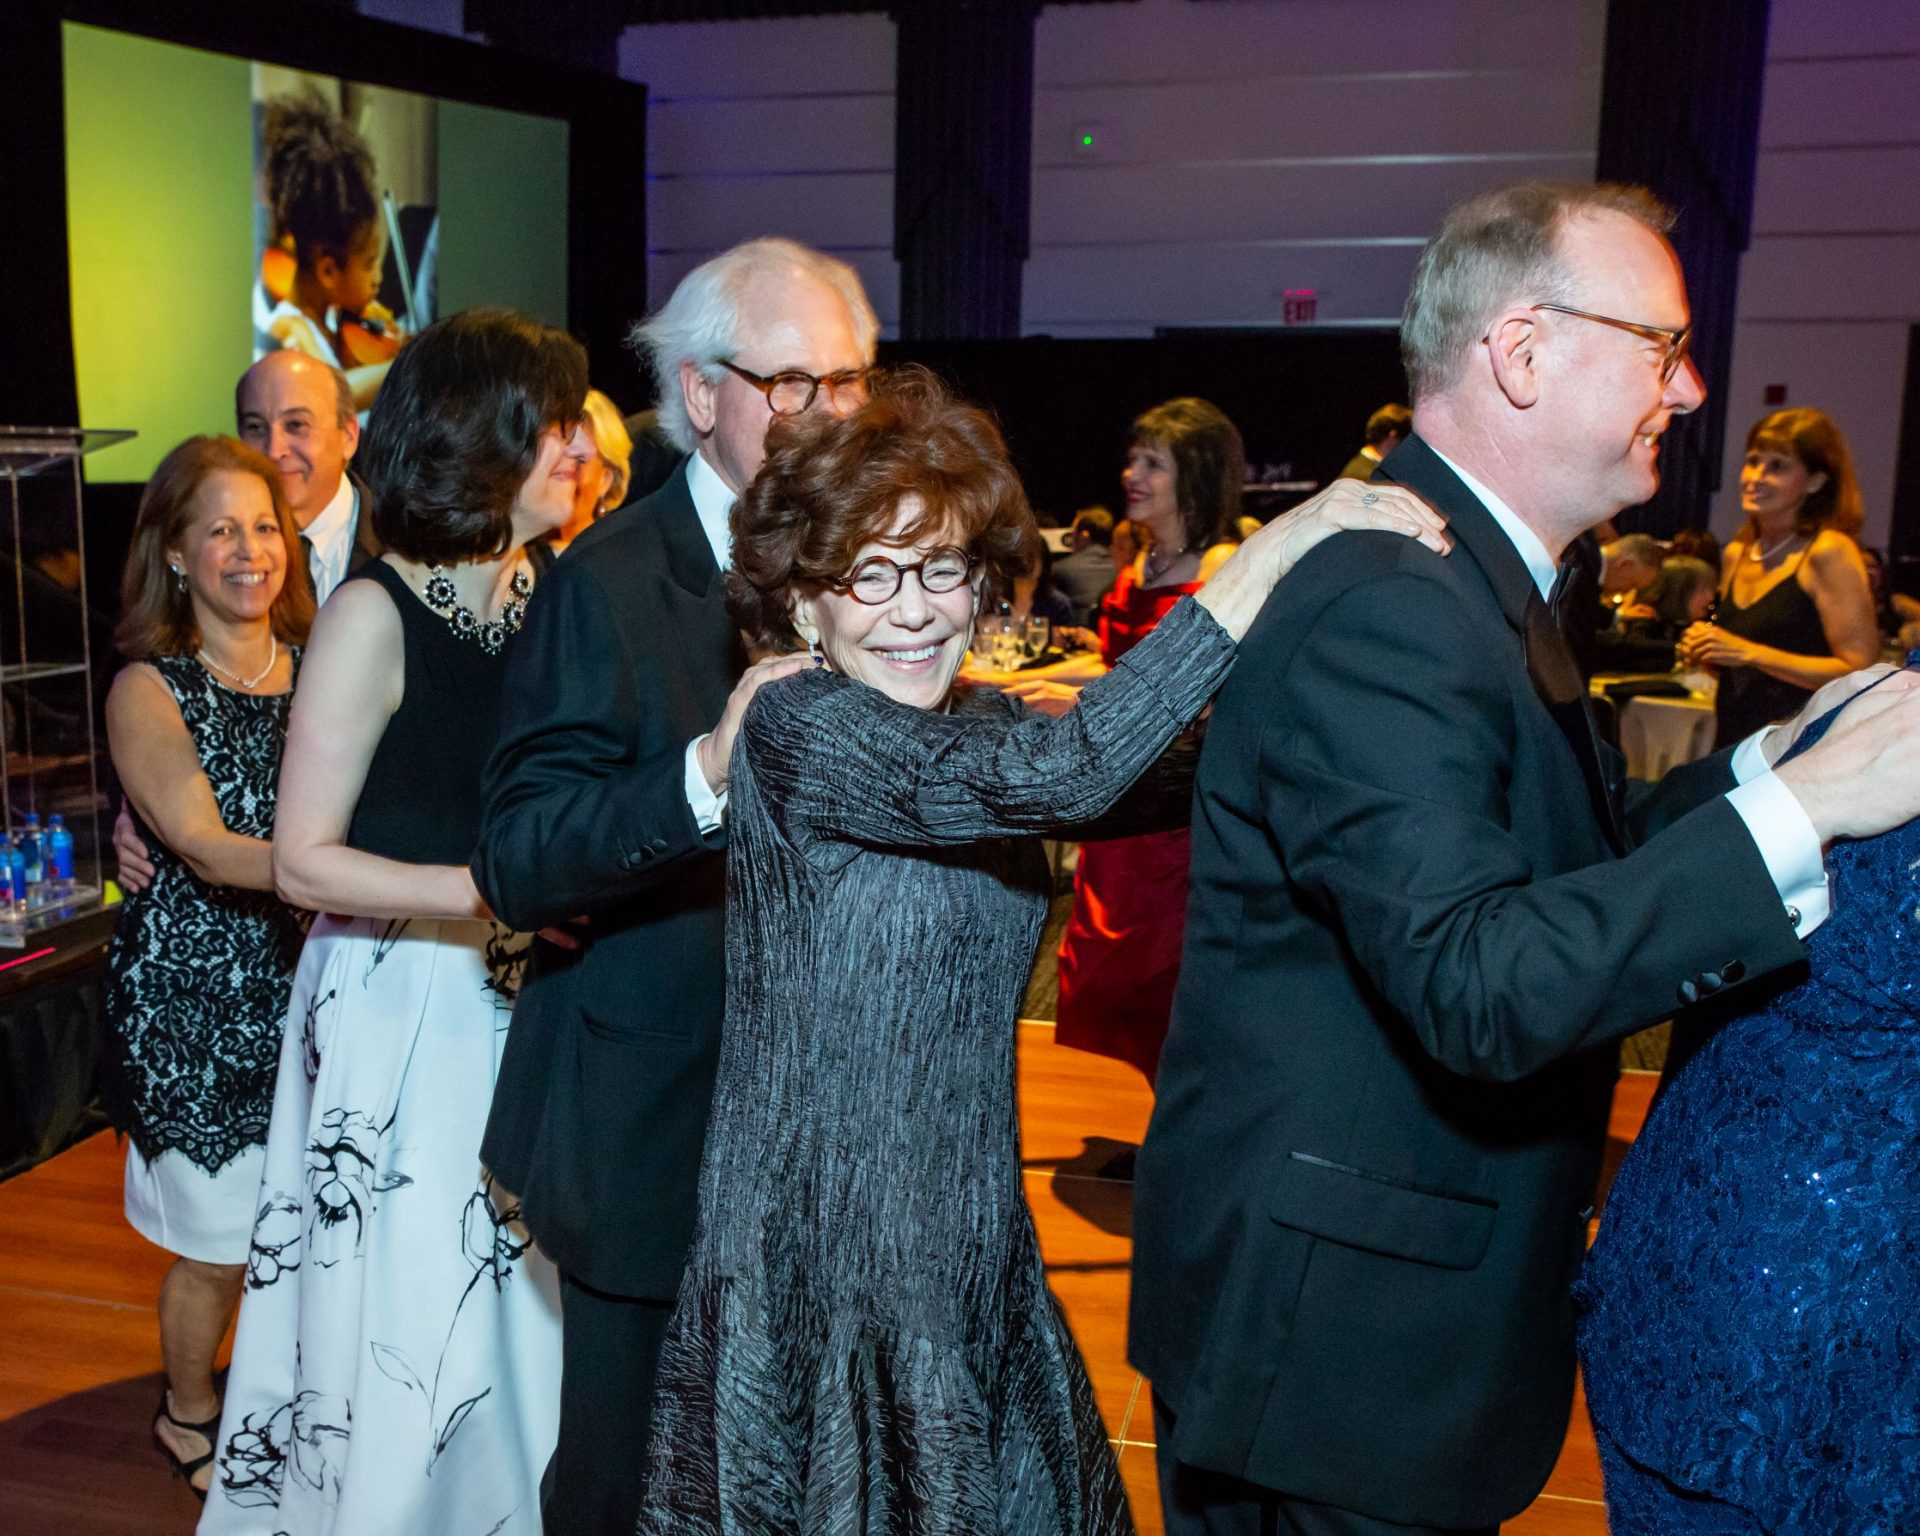 The conga line at the 110th Anniversary Gala